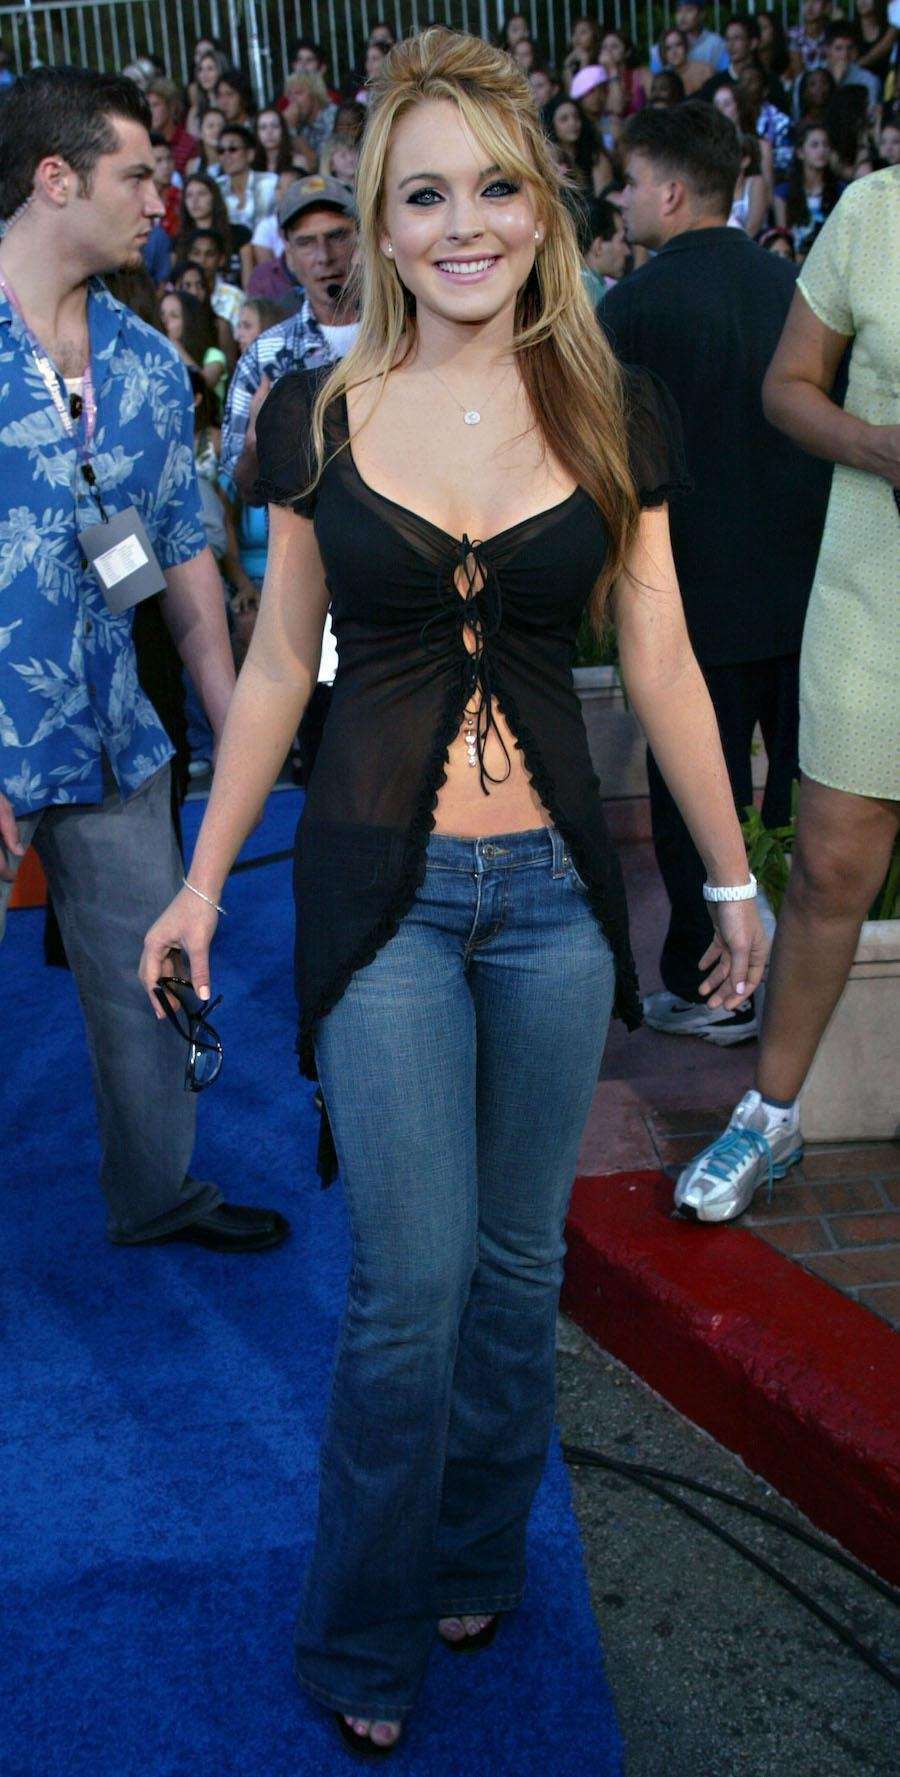 Lindsay Lohan attends the Teen Choice Awards on